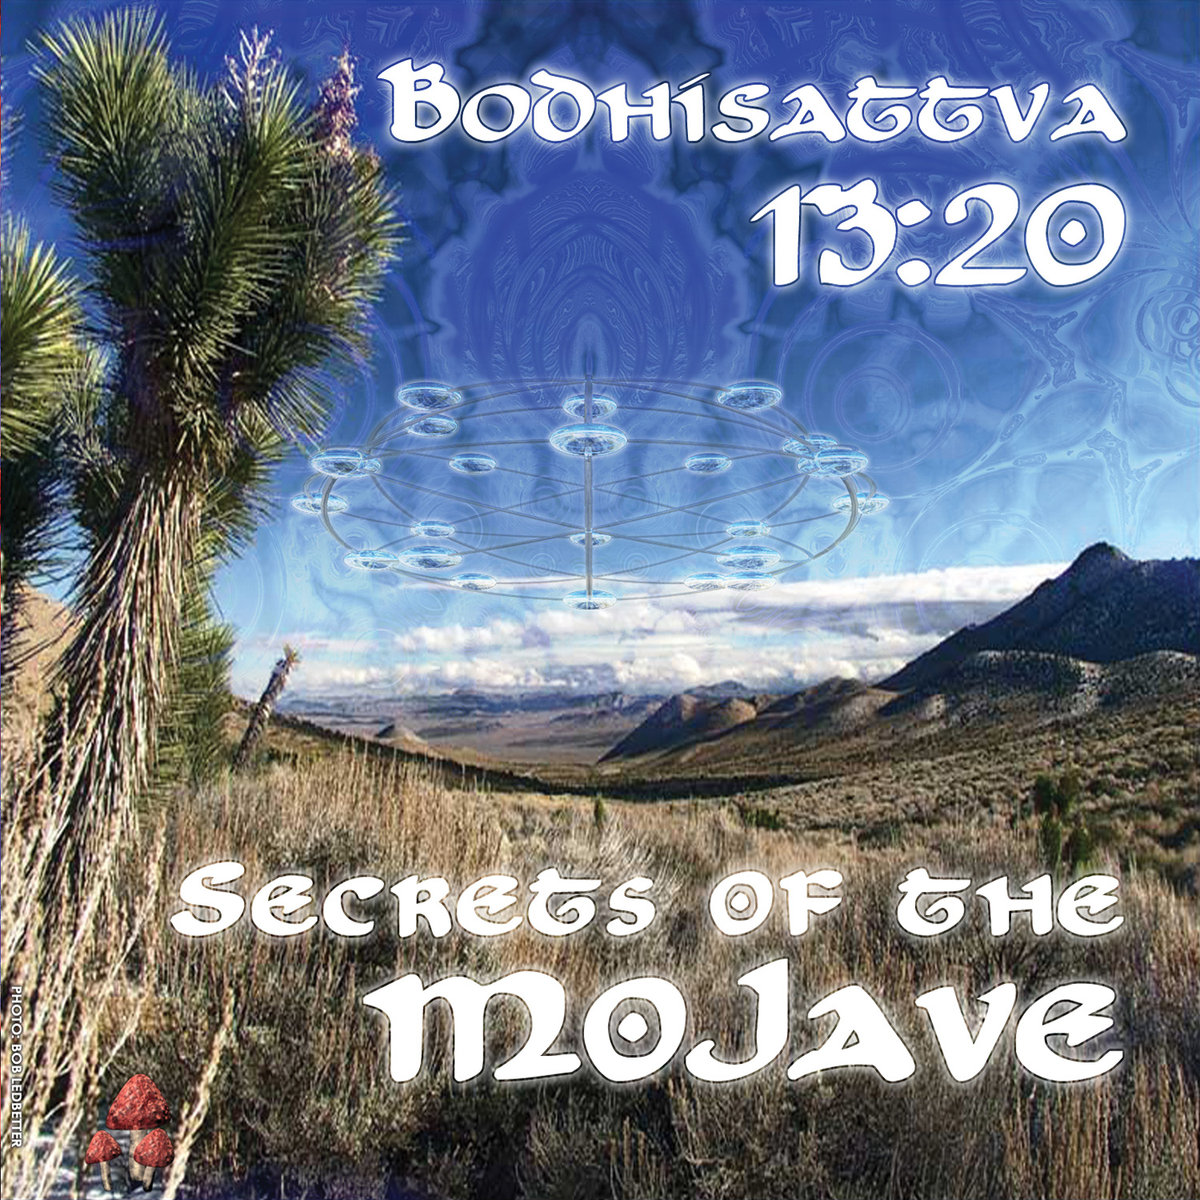 Bodhisattva 13:20 - Nocturnal Trancendance @ 'Secrets of the Mojave' album (electronic, goa)